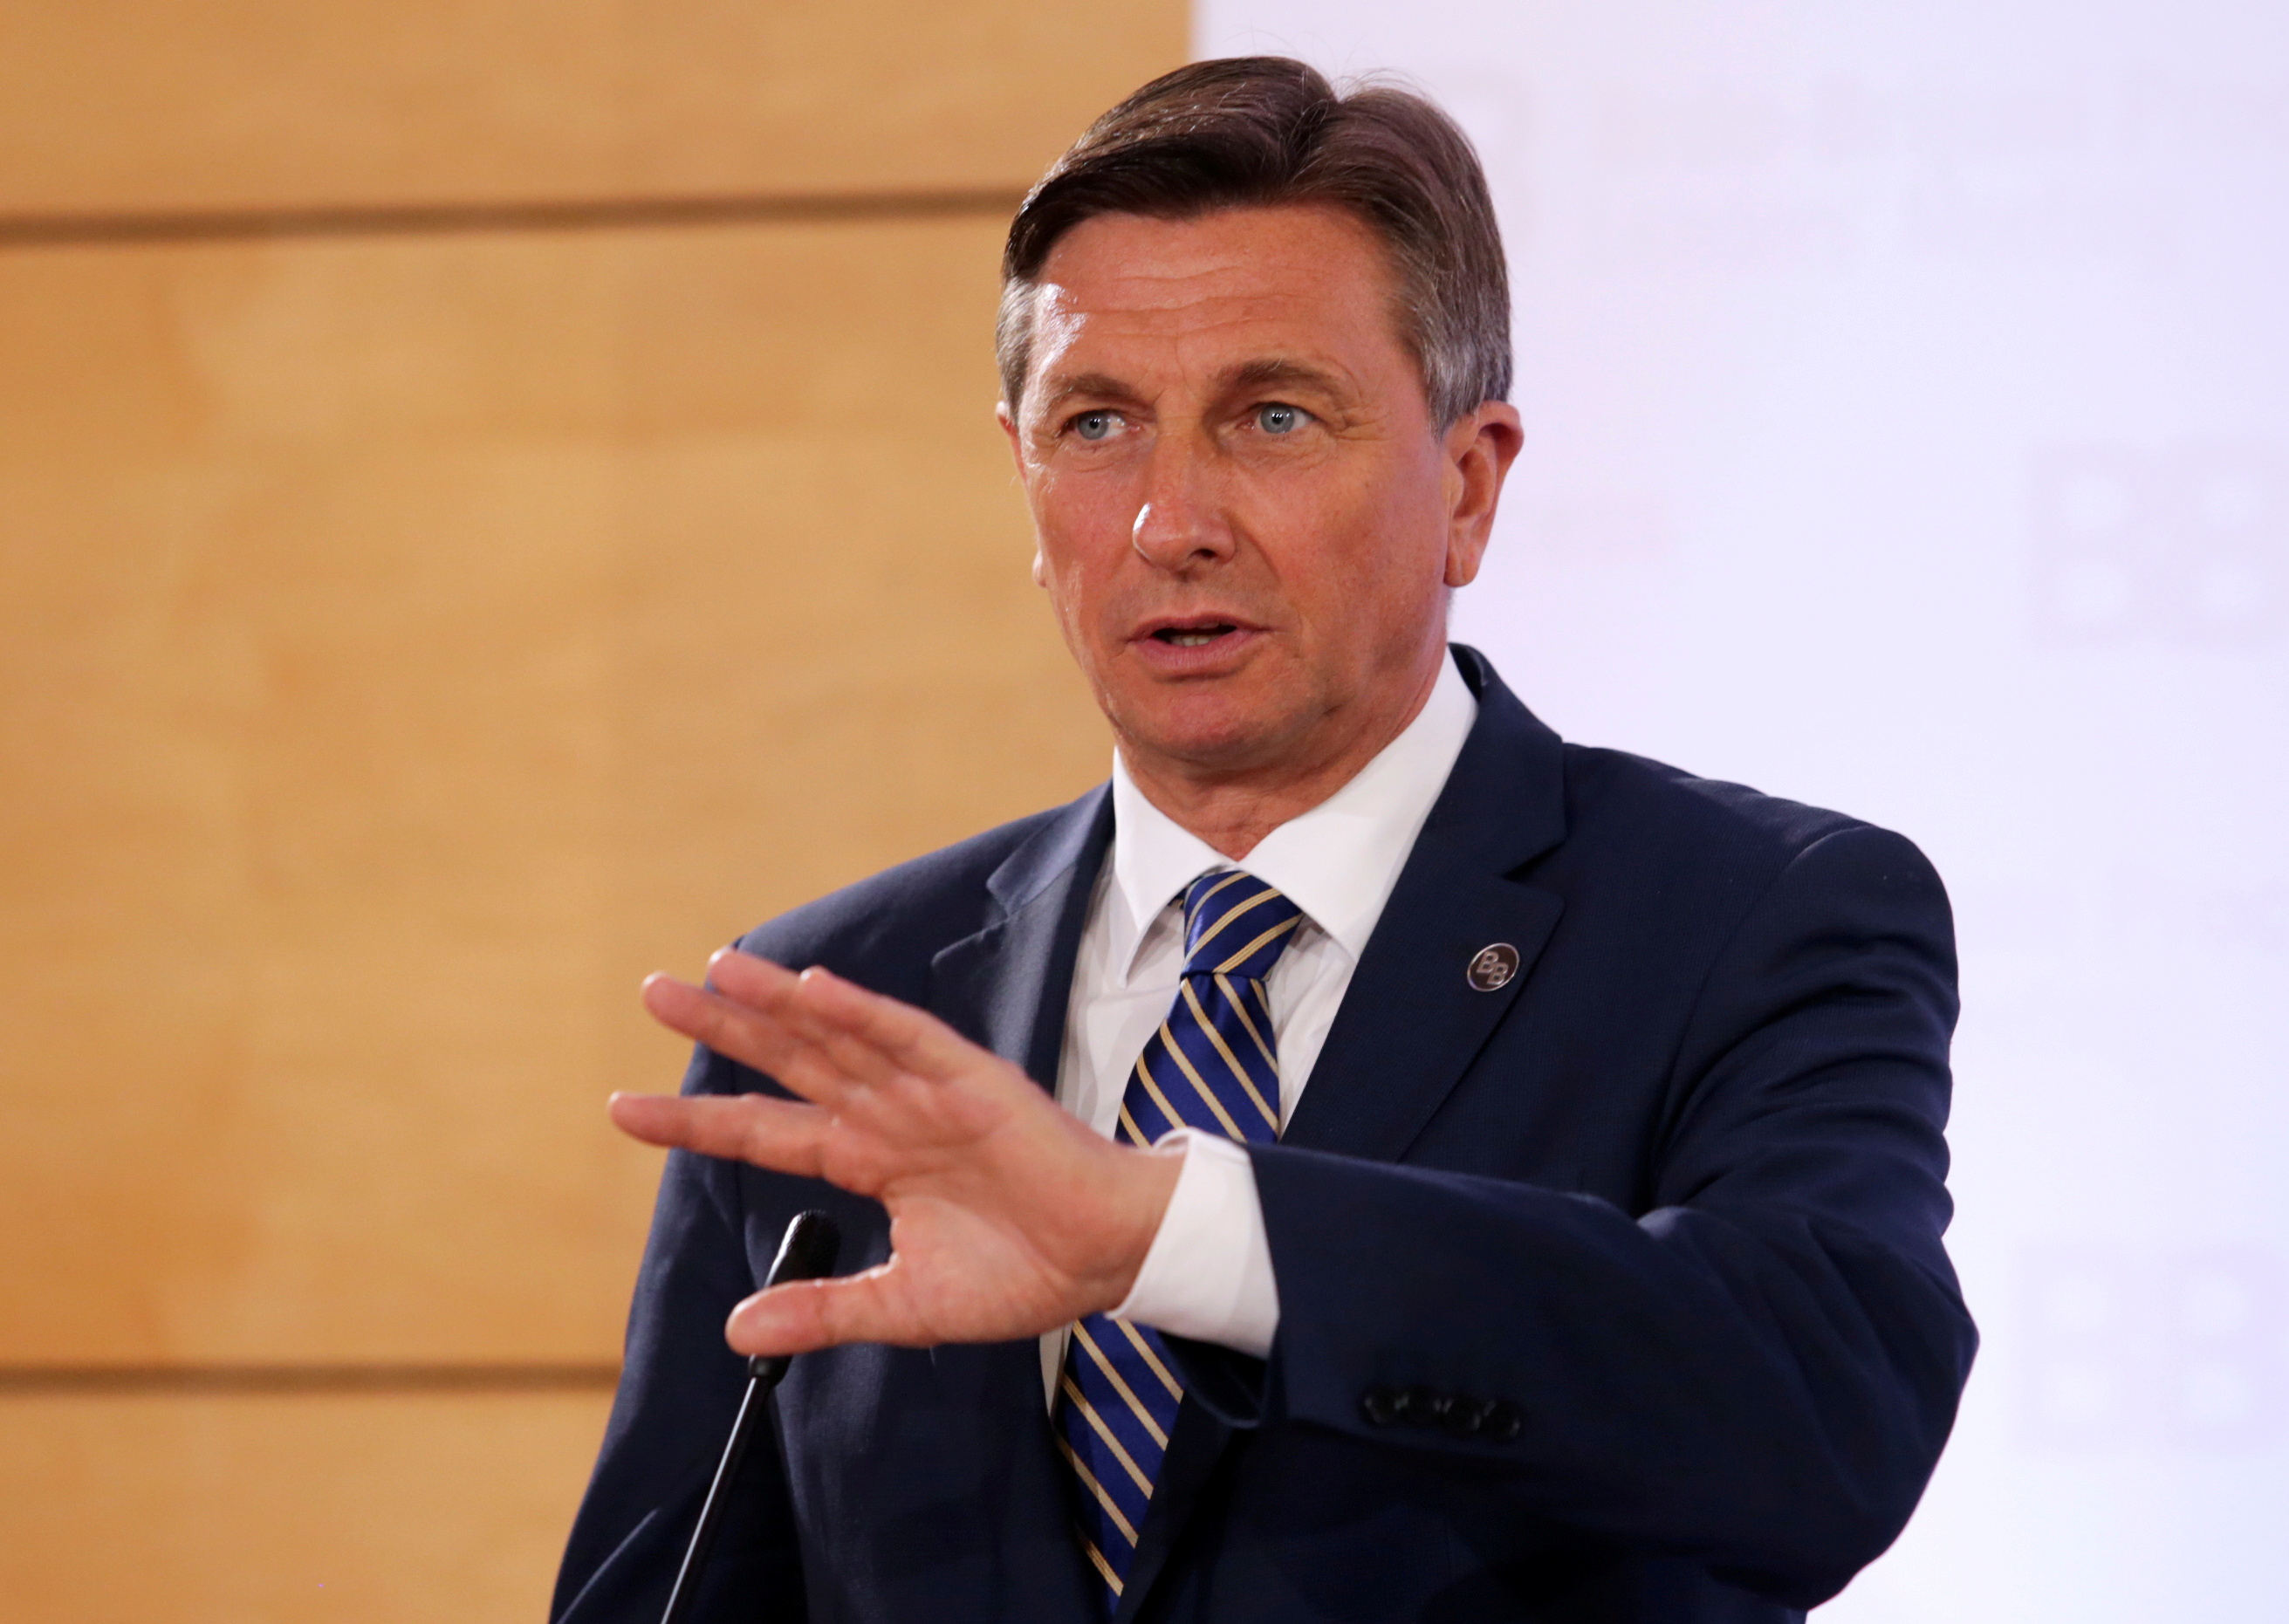 President of Slovenia Borut Pahor speaks during a news conference after the Brdo-Brijuni Process Leaders' Meeting in Tirana, Albania May 9, 2019. REUTERS/Florion Goga